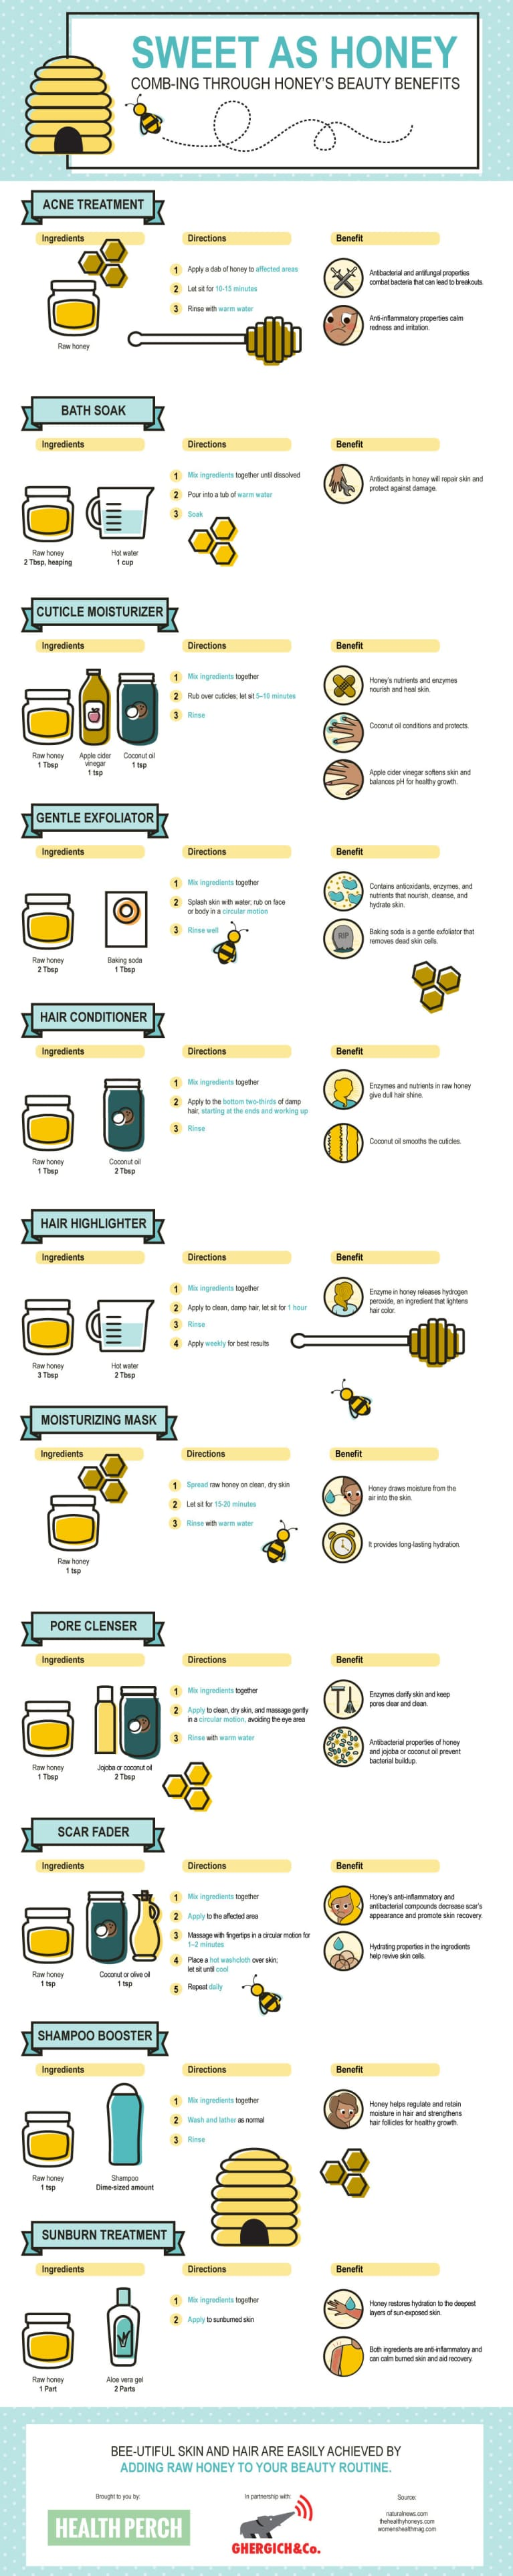 11 DIY Ways To Use Honey For Gorgeous Skin, Hair & Nails (Infographic)